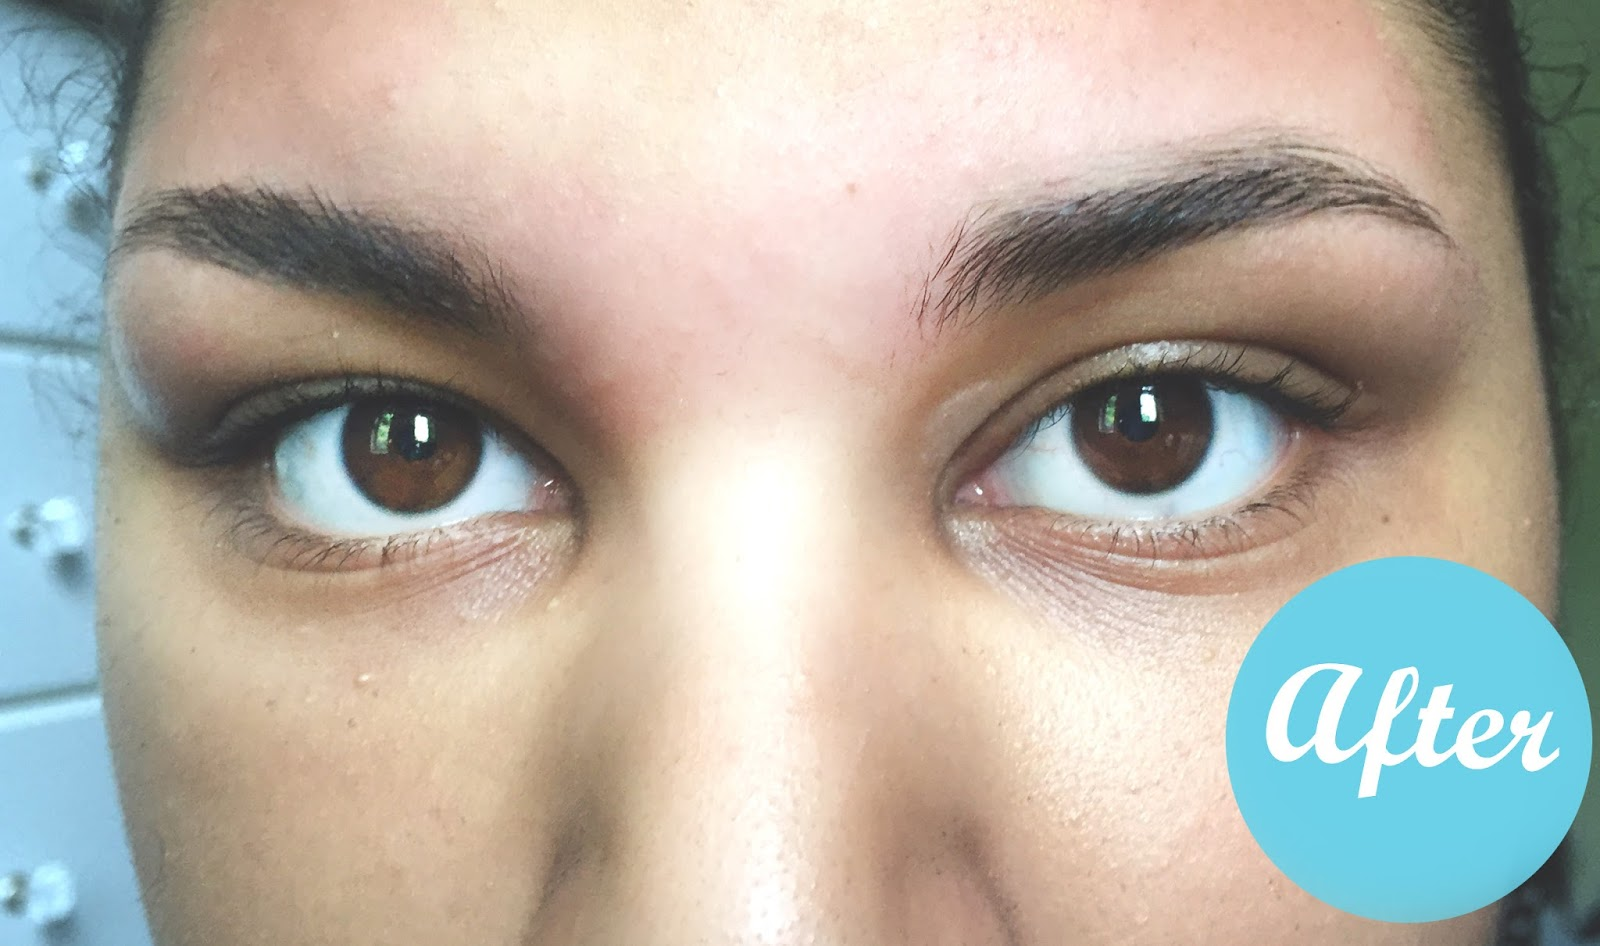 Eyebrow Waxing 101: At-Home Tips and What to Expect at theSalon Eyebrow Waxing 101: At-Home Tips and What to Expect at theSalon new picture